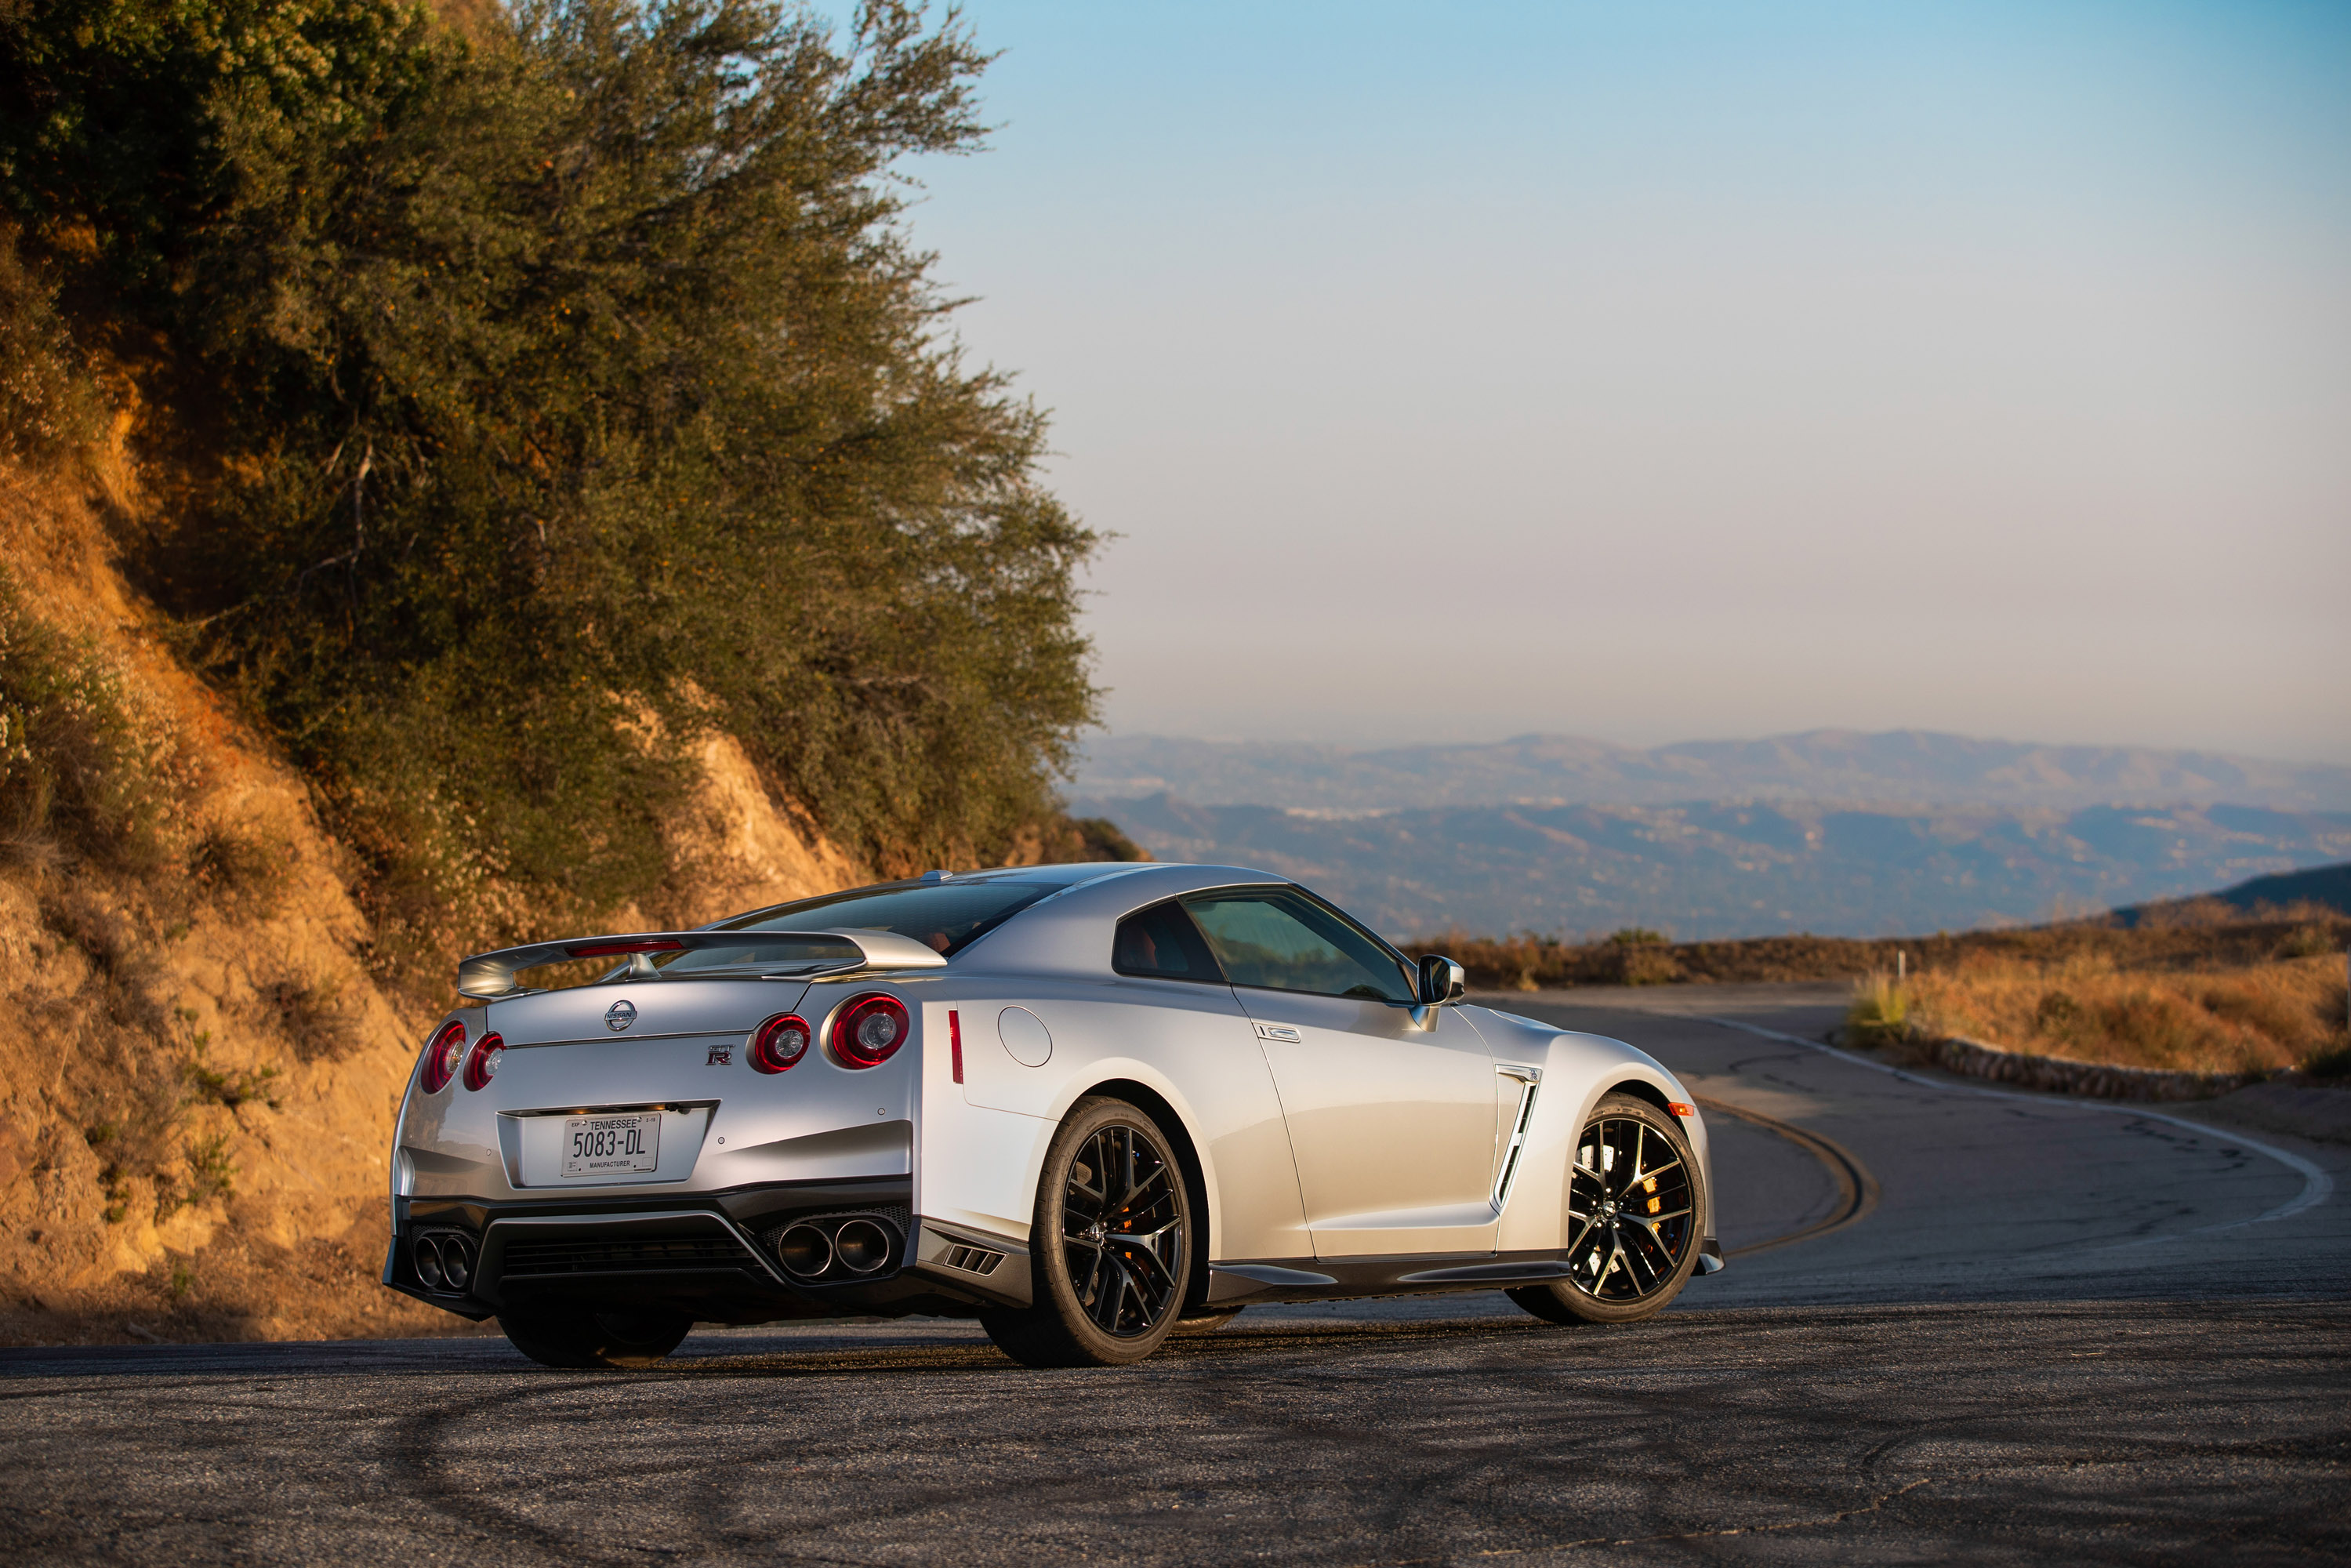 nissan reveals new 2019 gt r lineup details. Black Bedroom Furniture Sets. Home Design Ideas